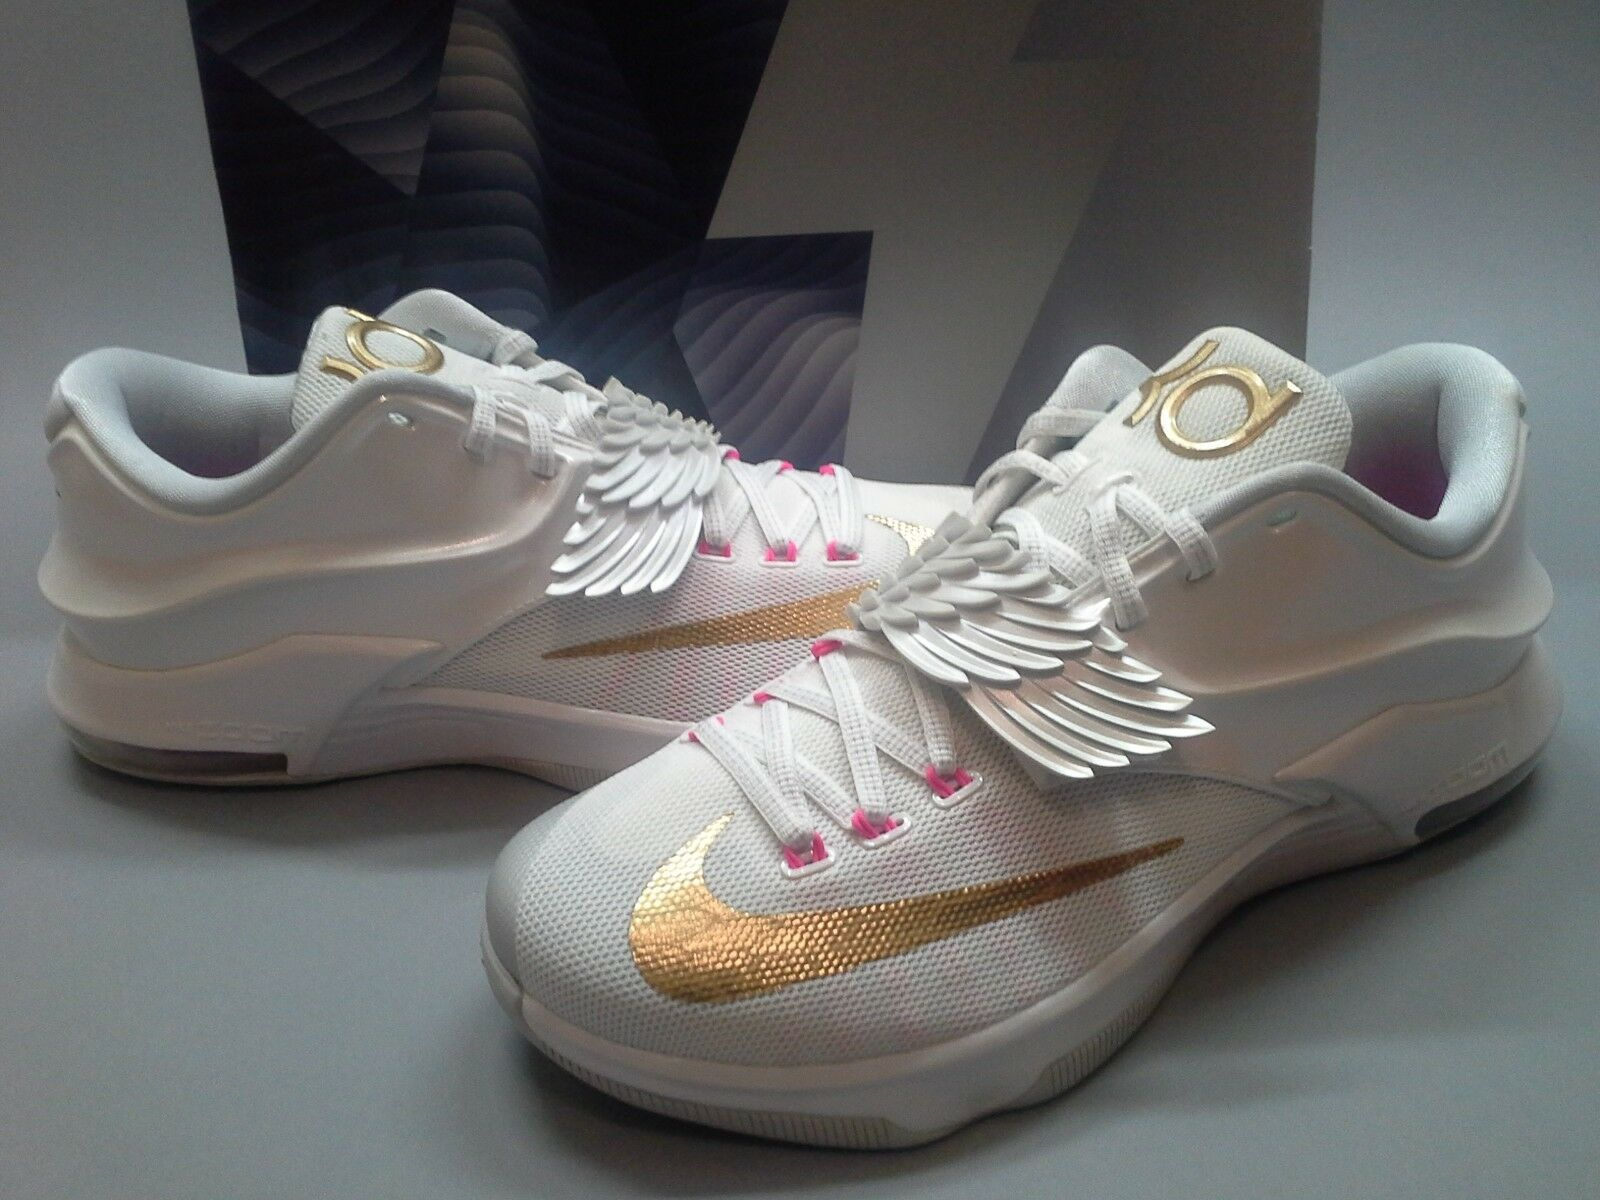 New Nike KD 7 VII PRM Aunt Pearl 706858-176 White Pink Gold Kay Yow Kevin Durant The latest discount shoes for men and women